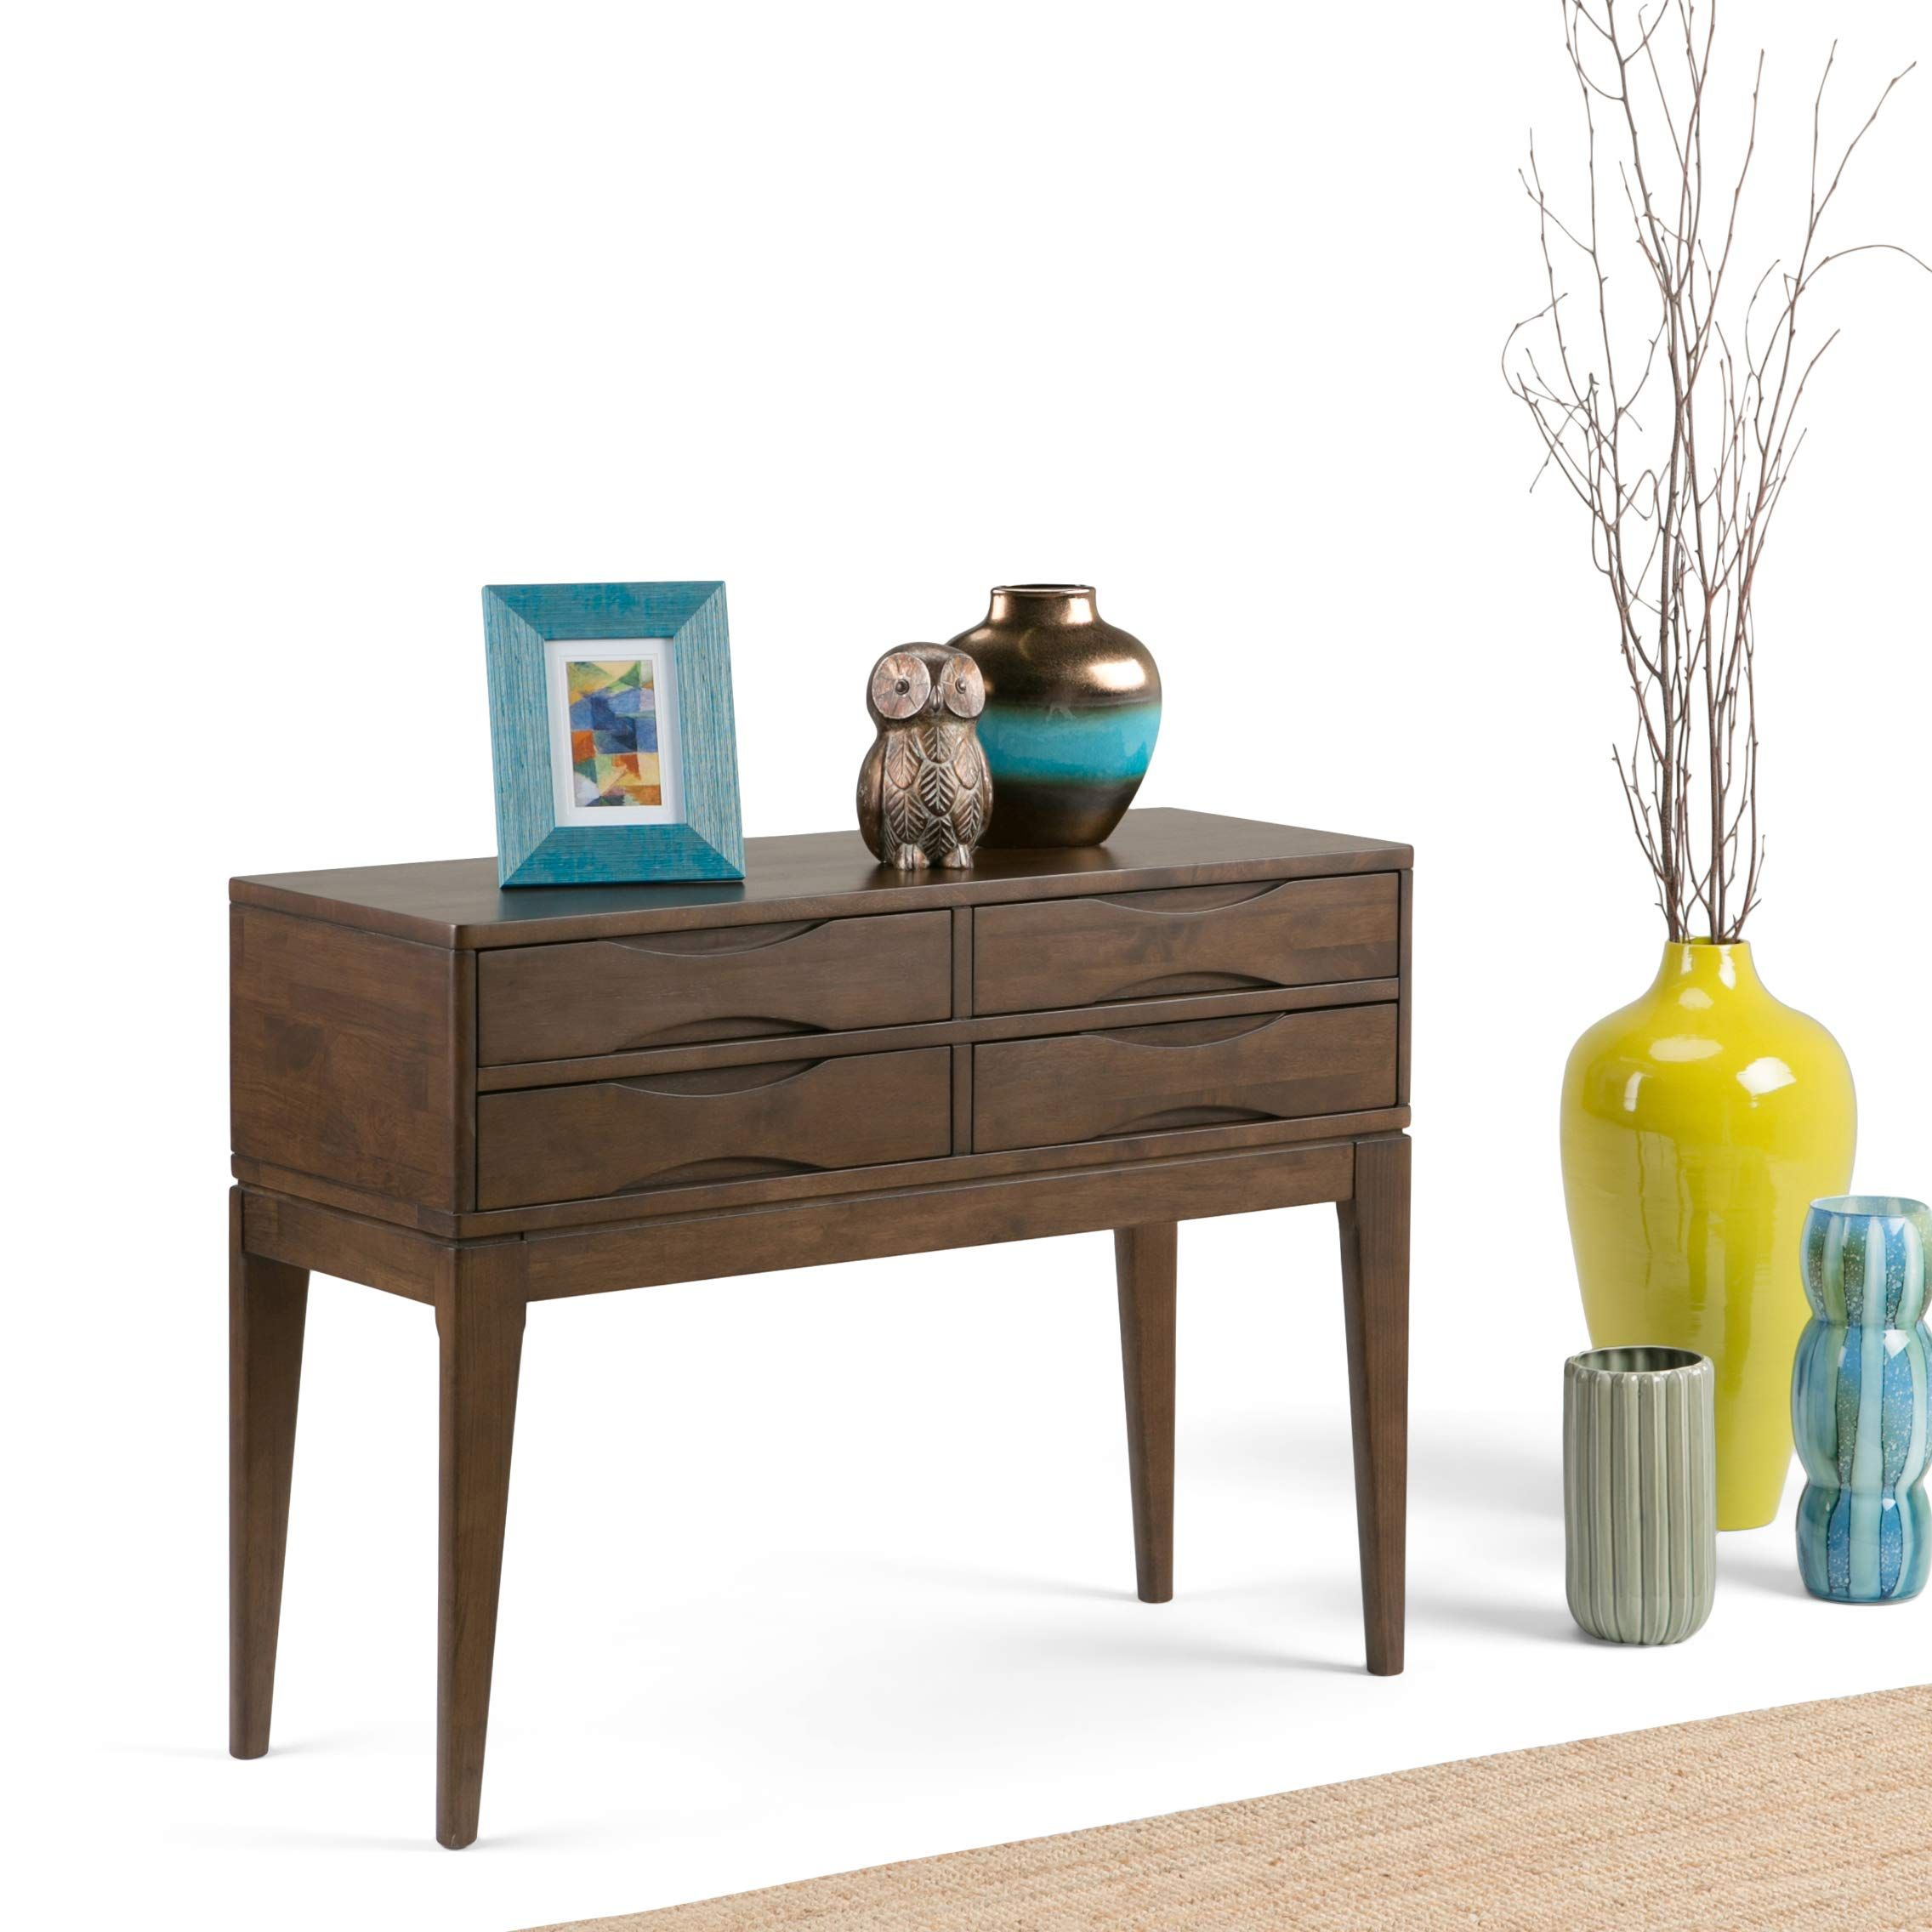 Simpli Home 3axchrp 04 Harper Solid Hardwood 40 Inch Wide Mid Century Modern Hallway Console Sofa Tabl Console Table Hallway Hallway Console Wood Console Table